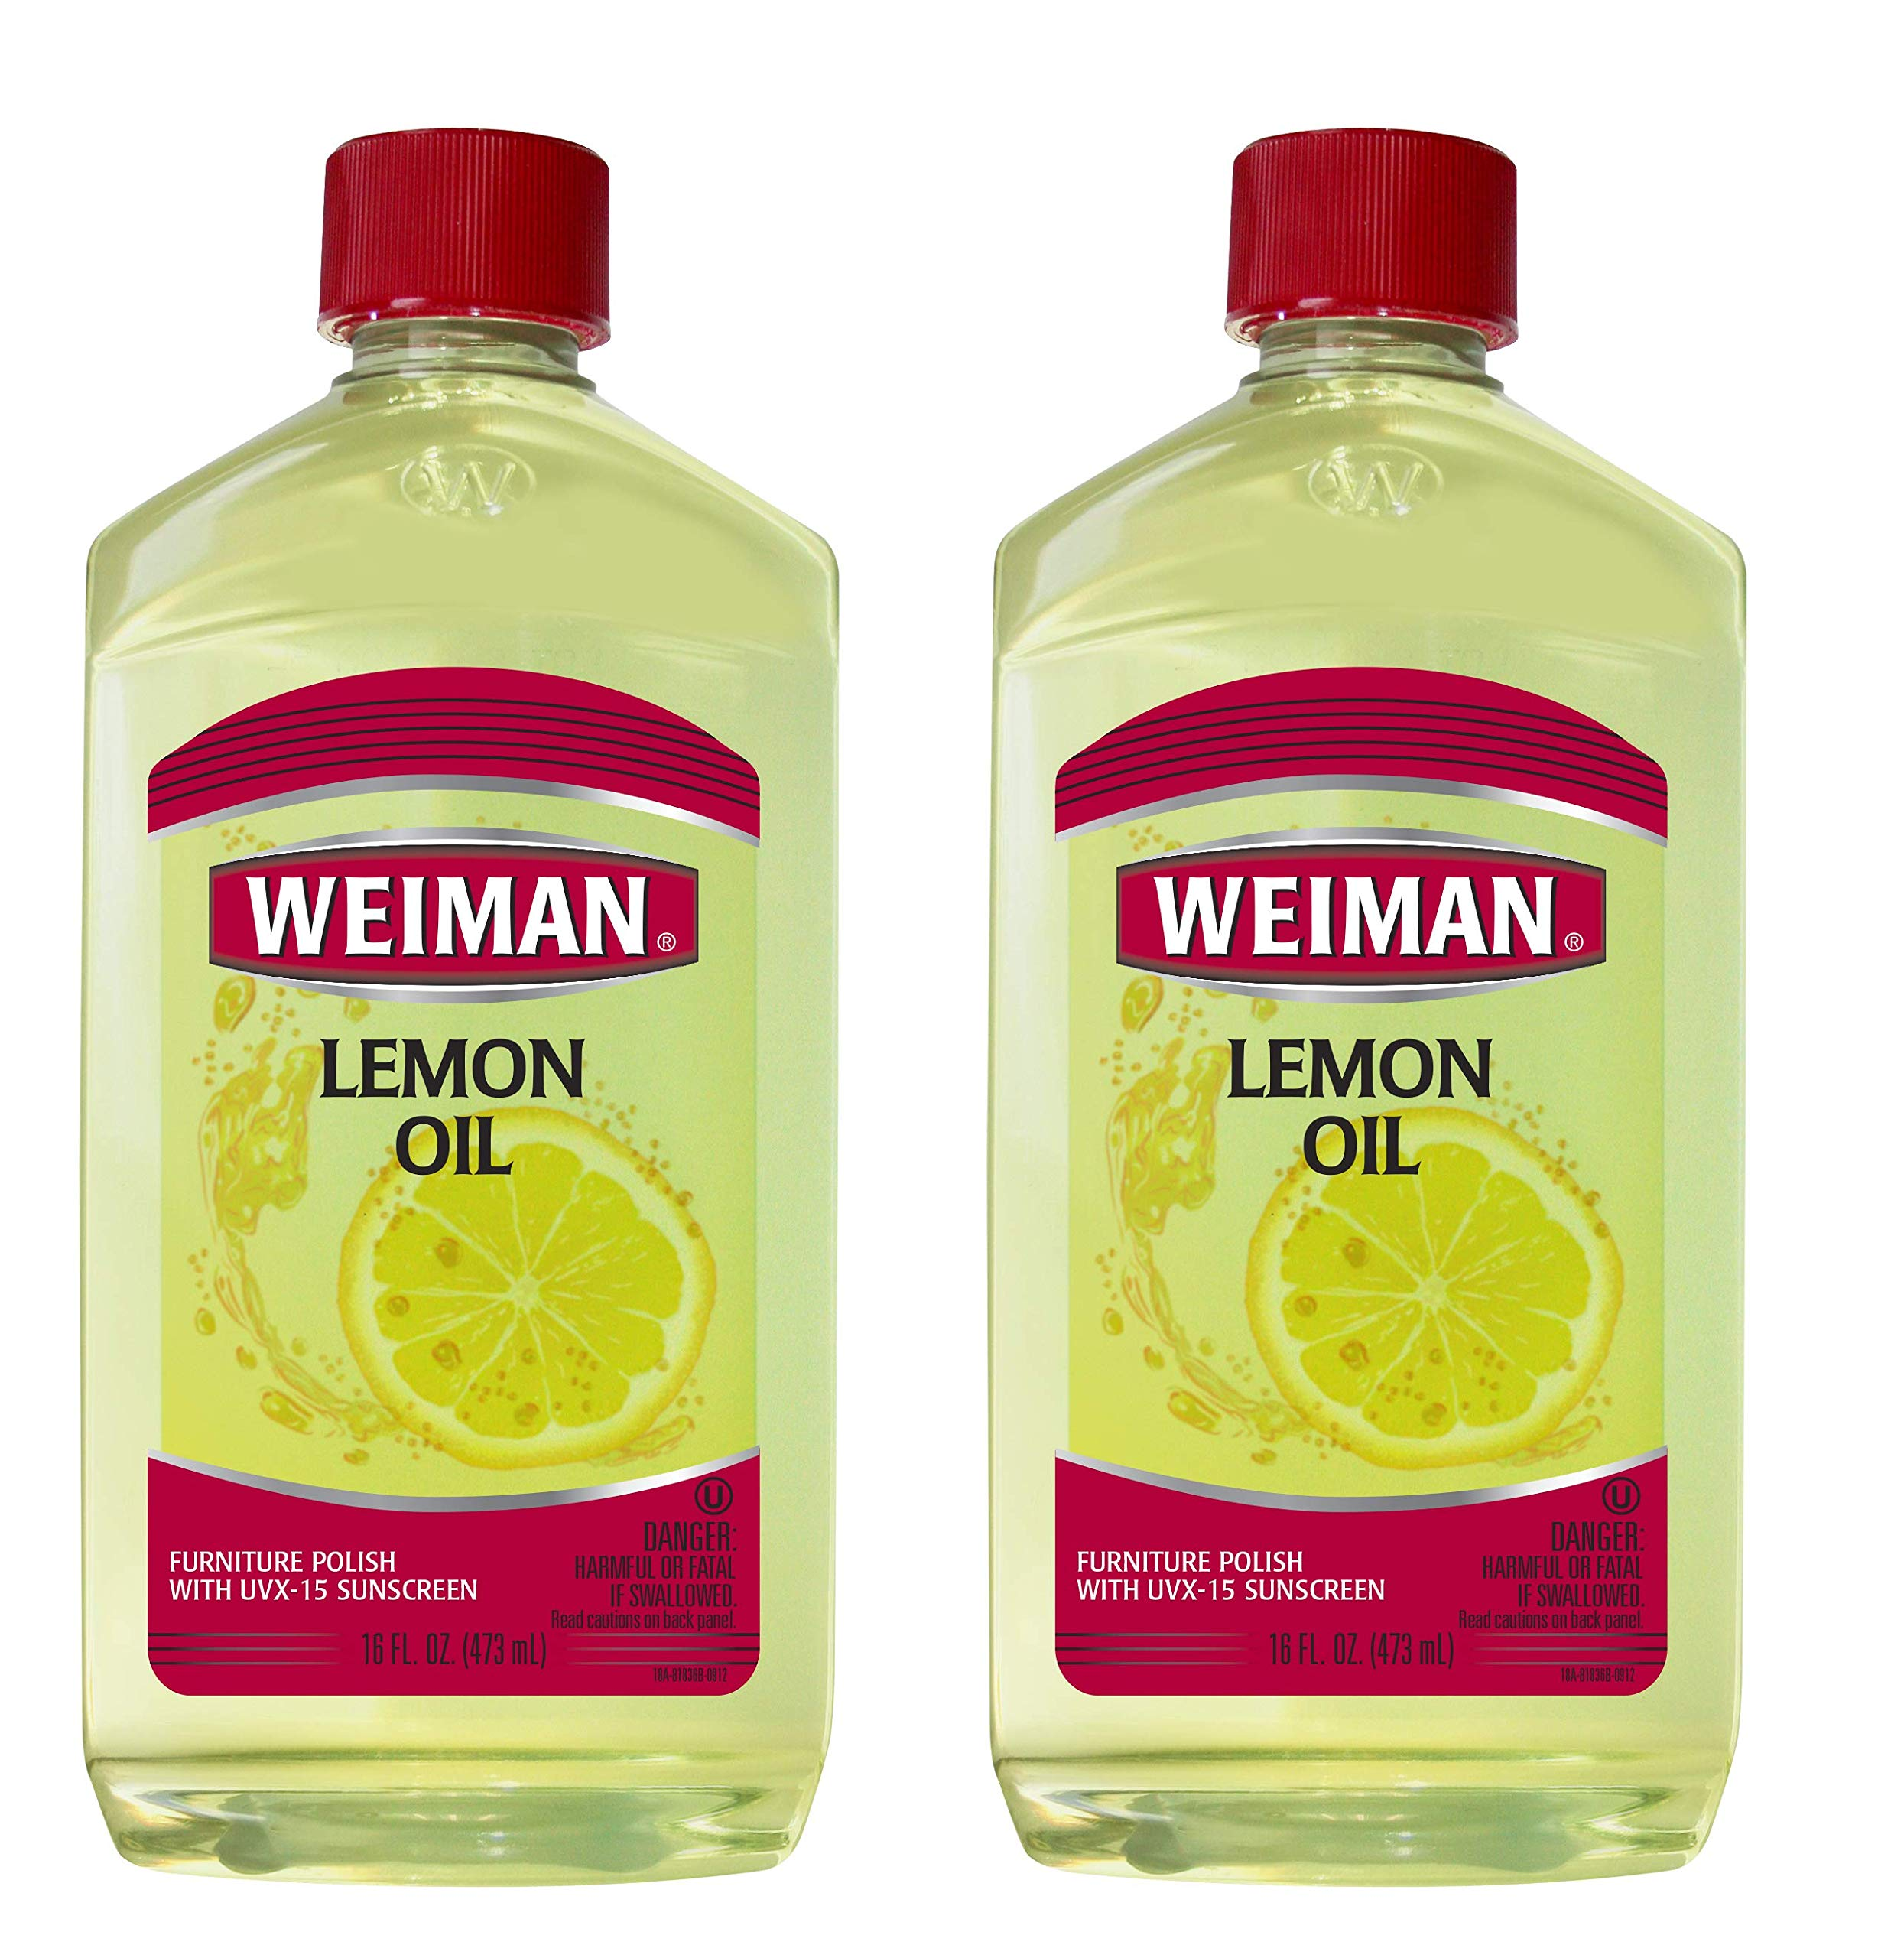 Weiman Lemon Oil Wood Polish [2 Pack] 16 Fluid Ounce - UV Protection, Gently Cleans, Protects, Moisturizes, Restores and Conditions Wood by Weiman (Image #1)